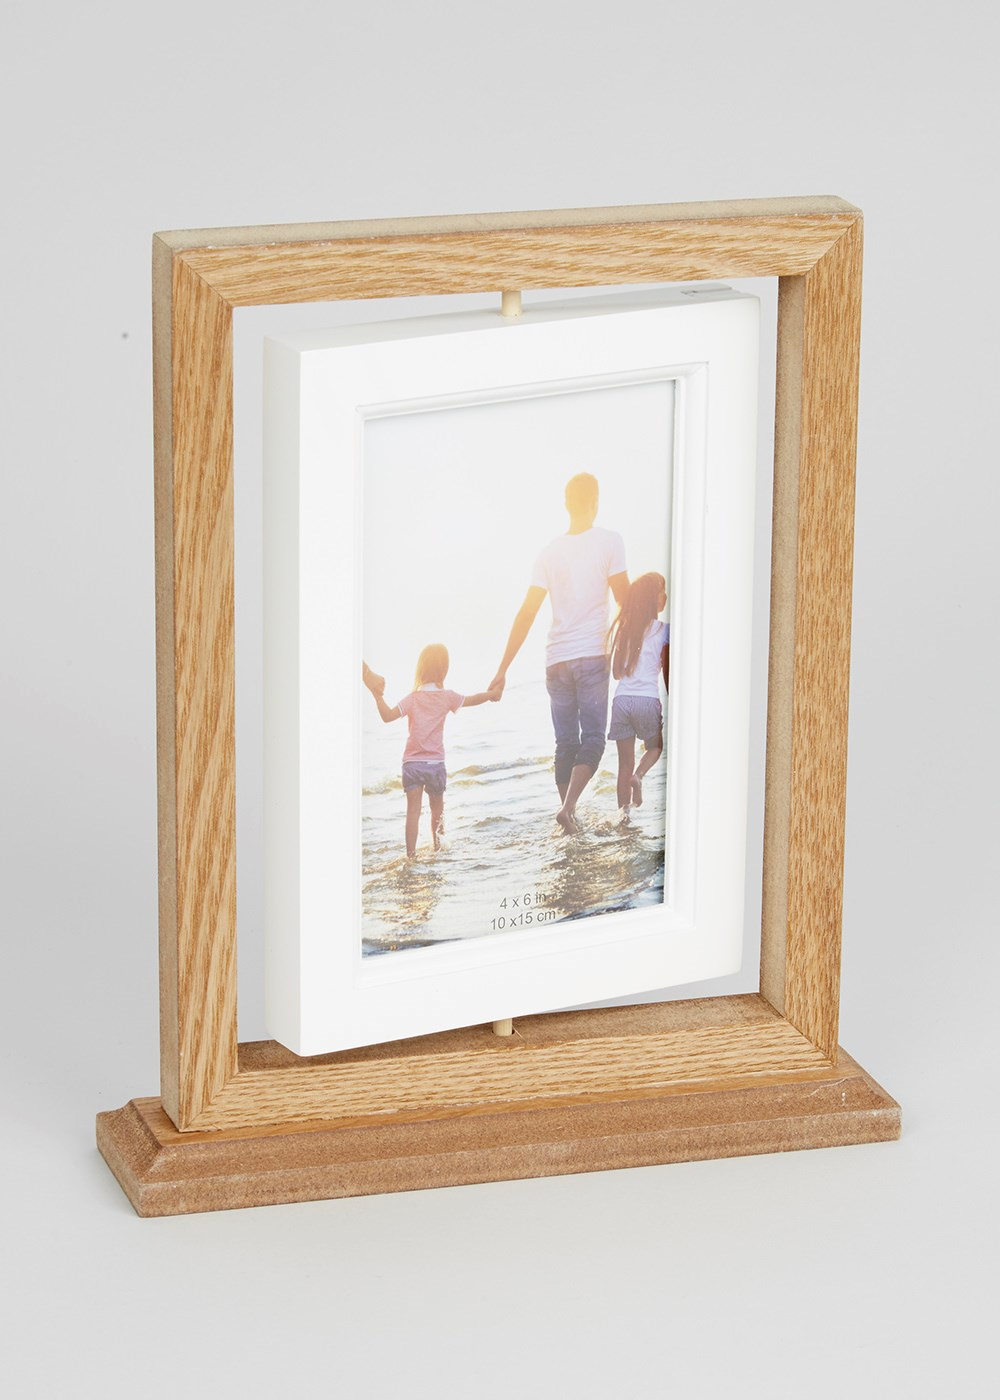 Image showing Rotating Photo Frame